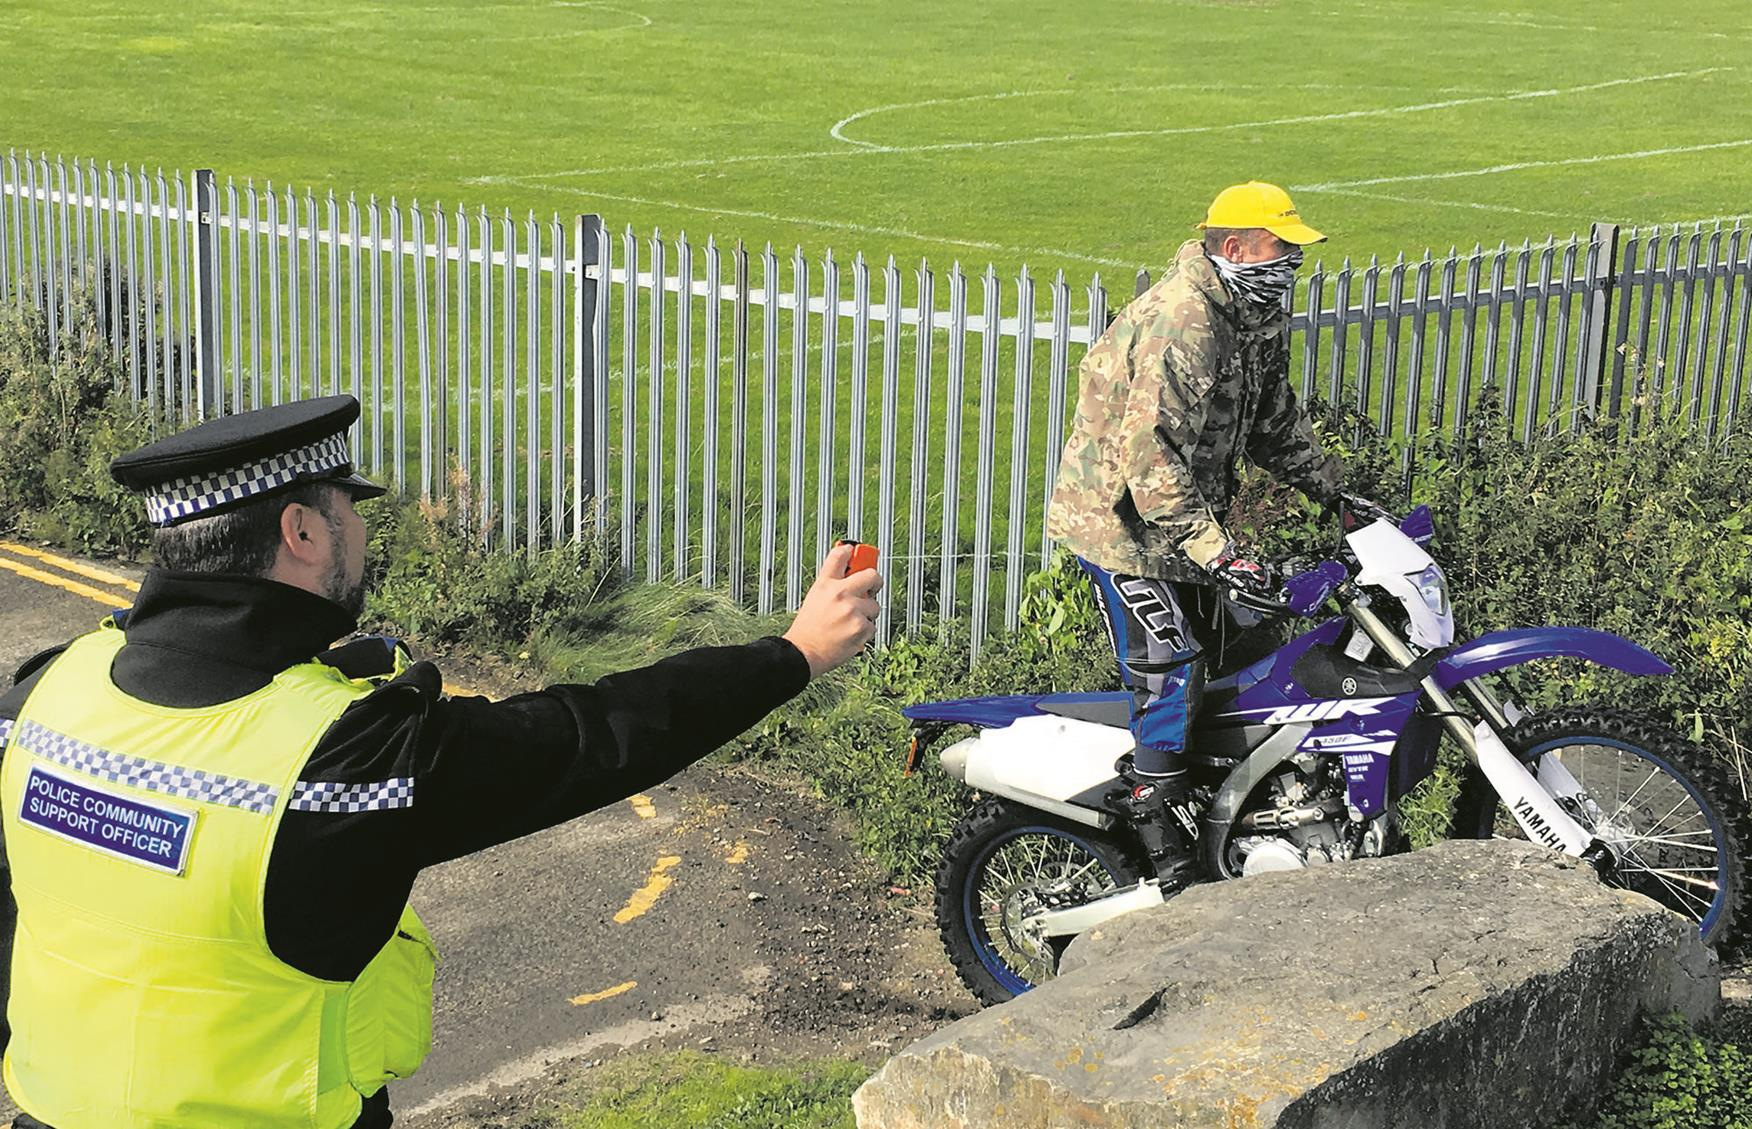 Police fight motorbike crime with DNA spray